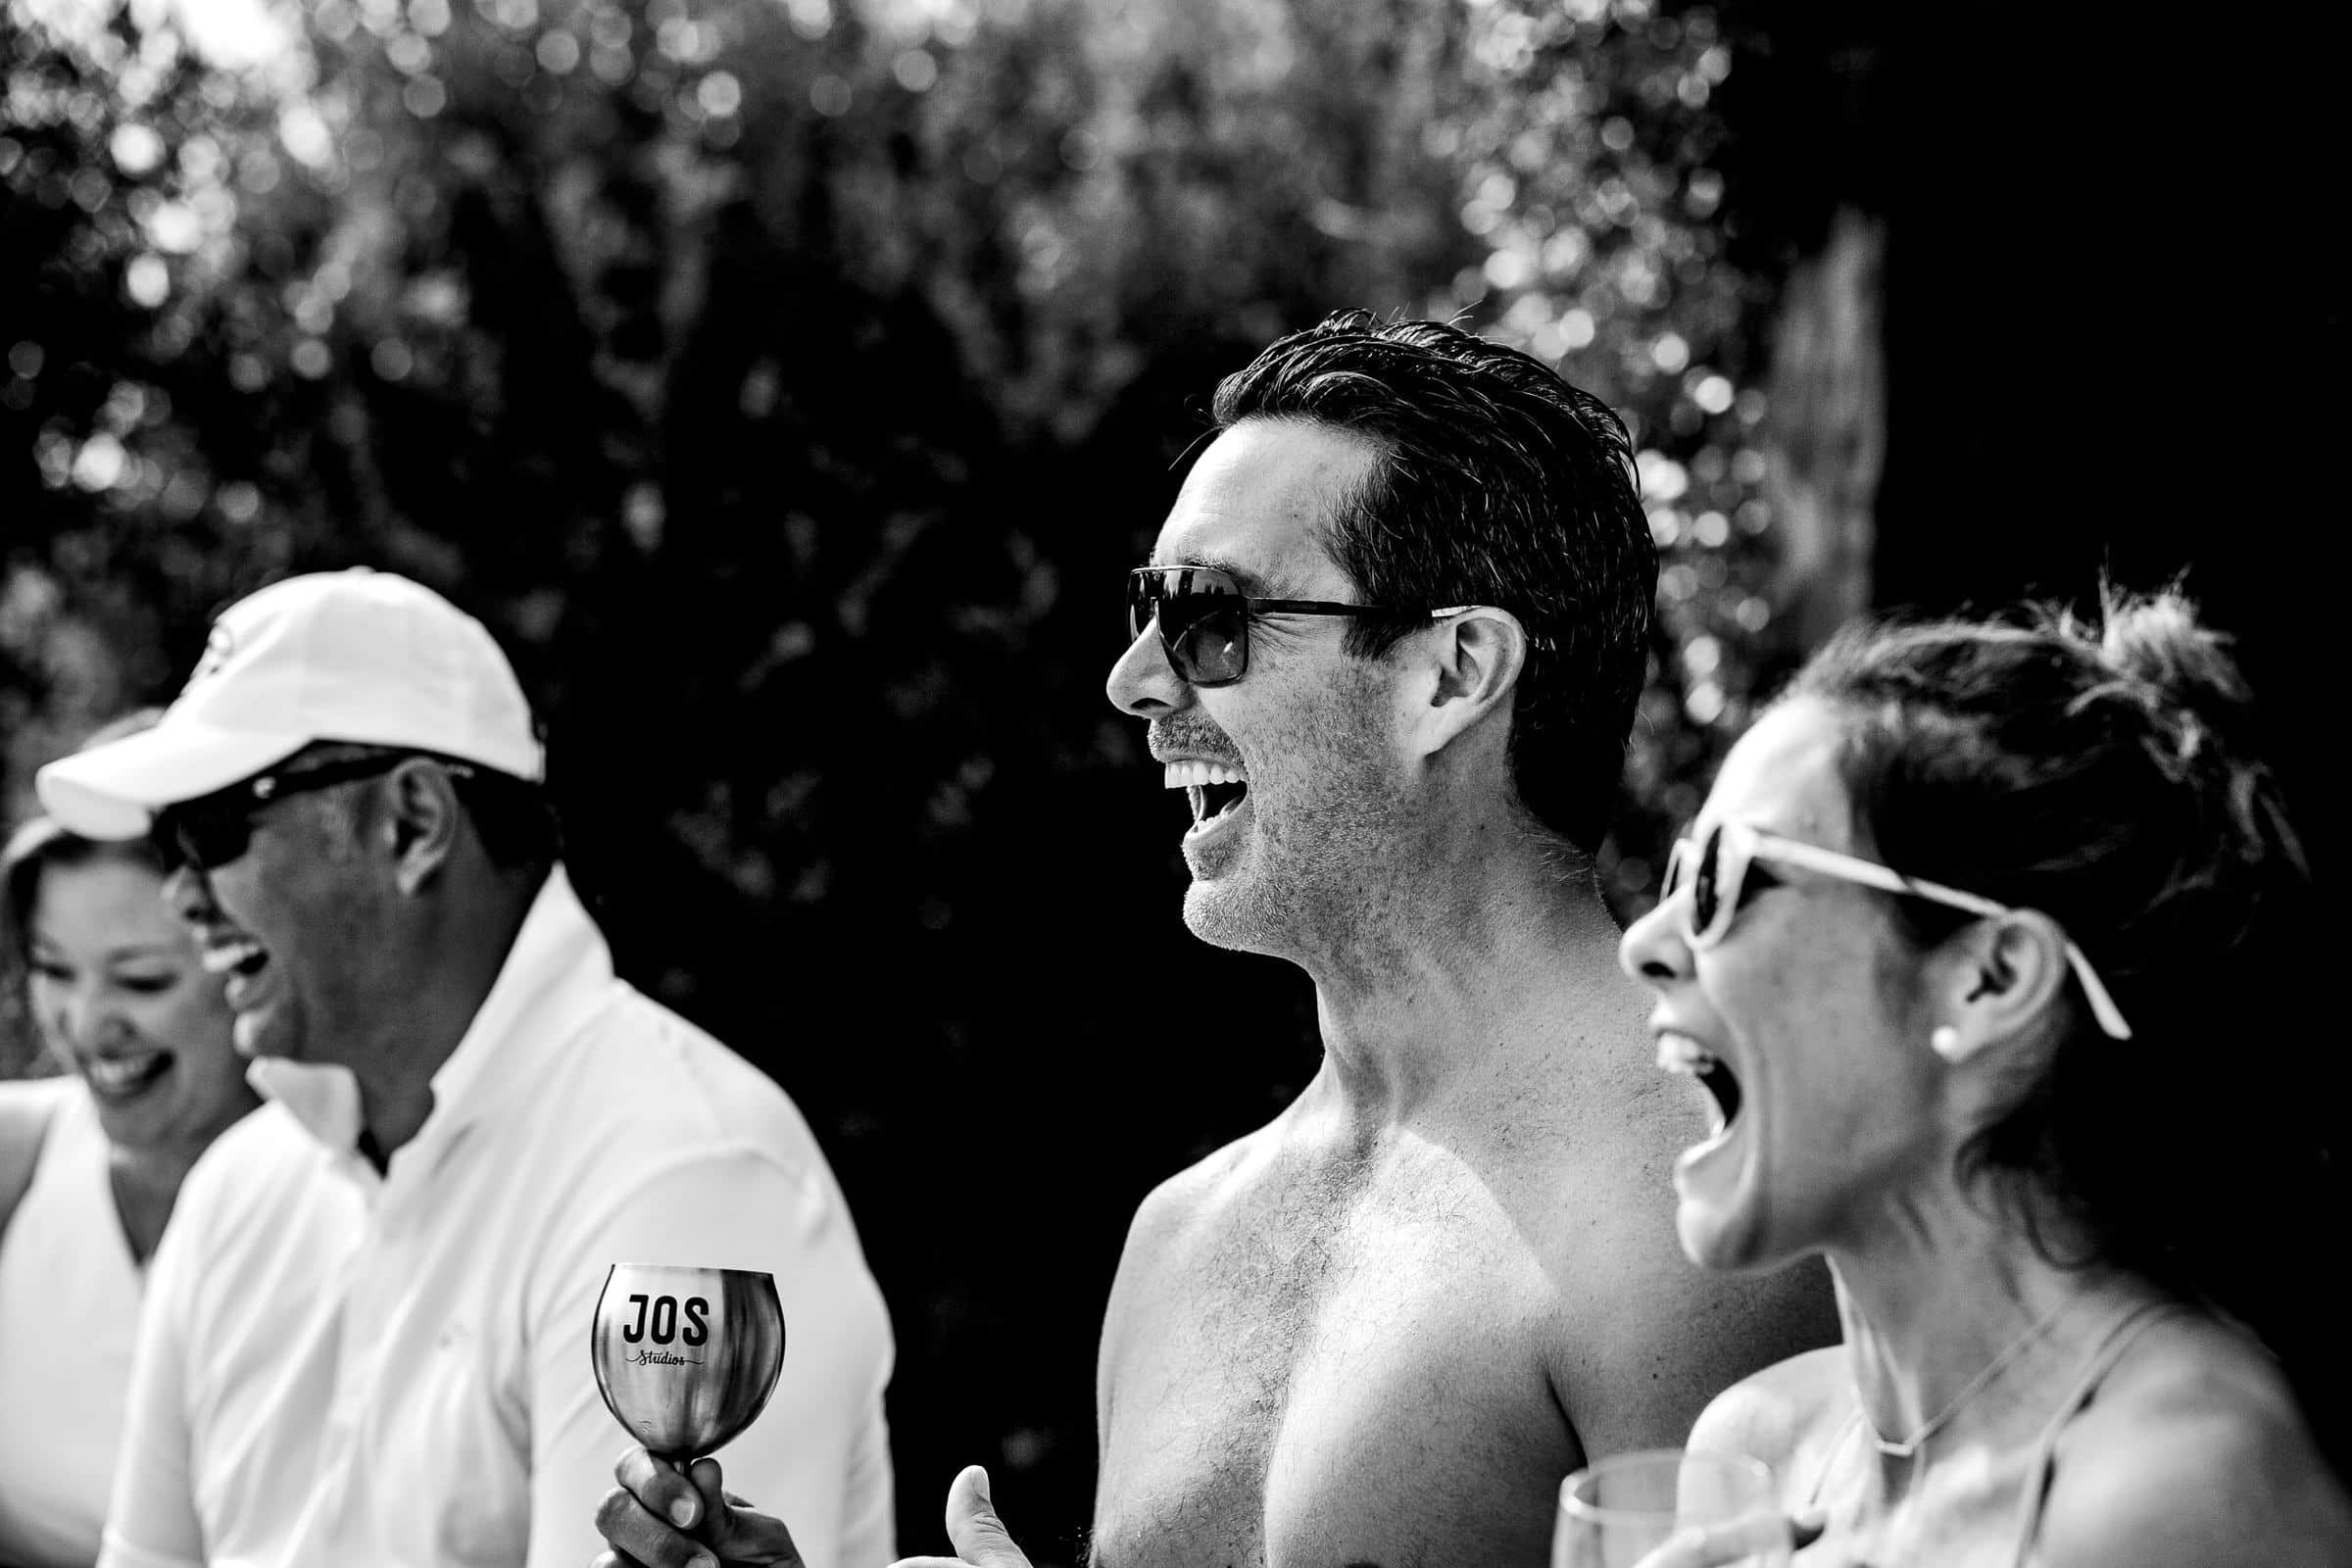 Guest laughing together at a pool party during a Villa Tre Grazie wedding celebration near Todi, Italy.